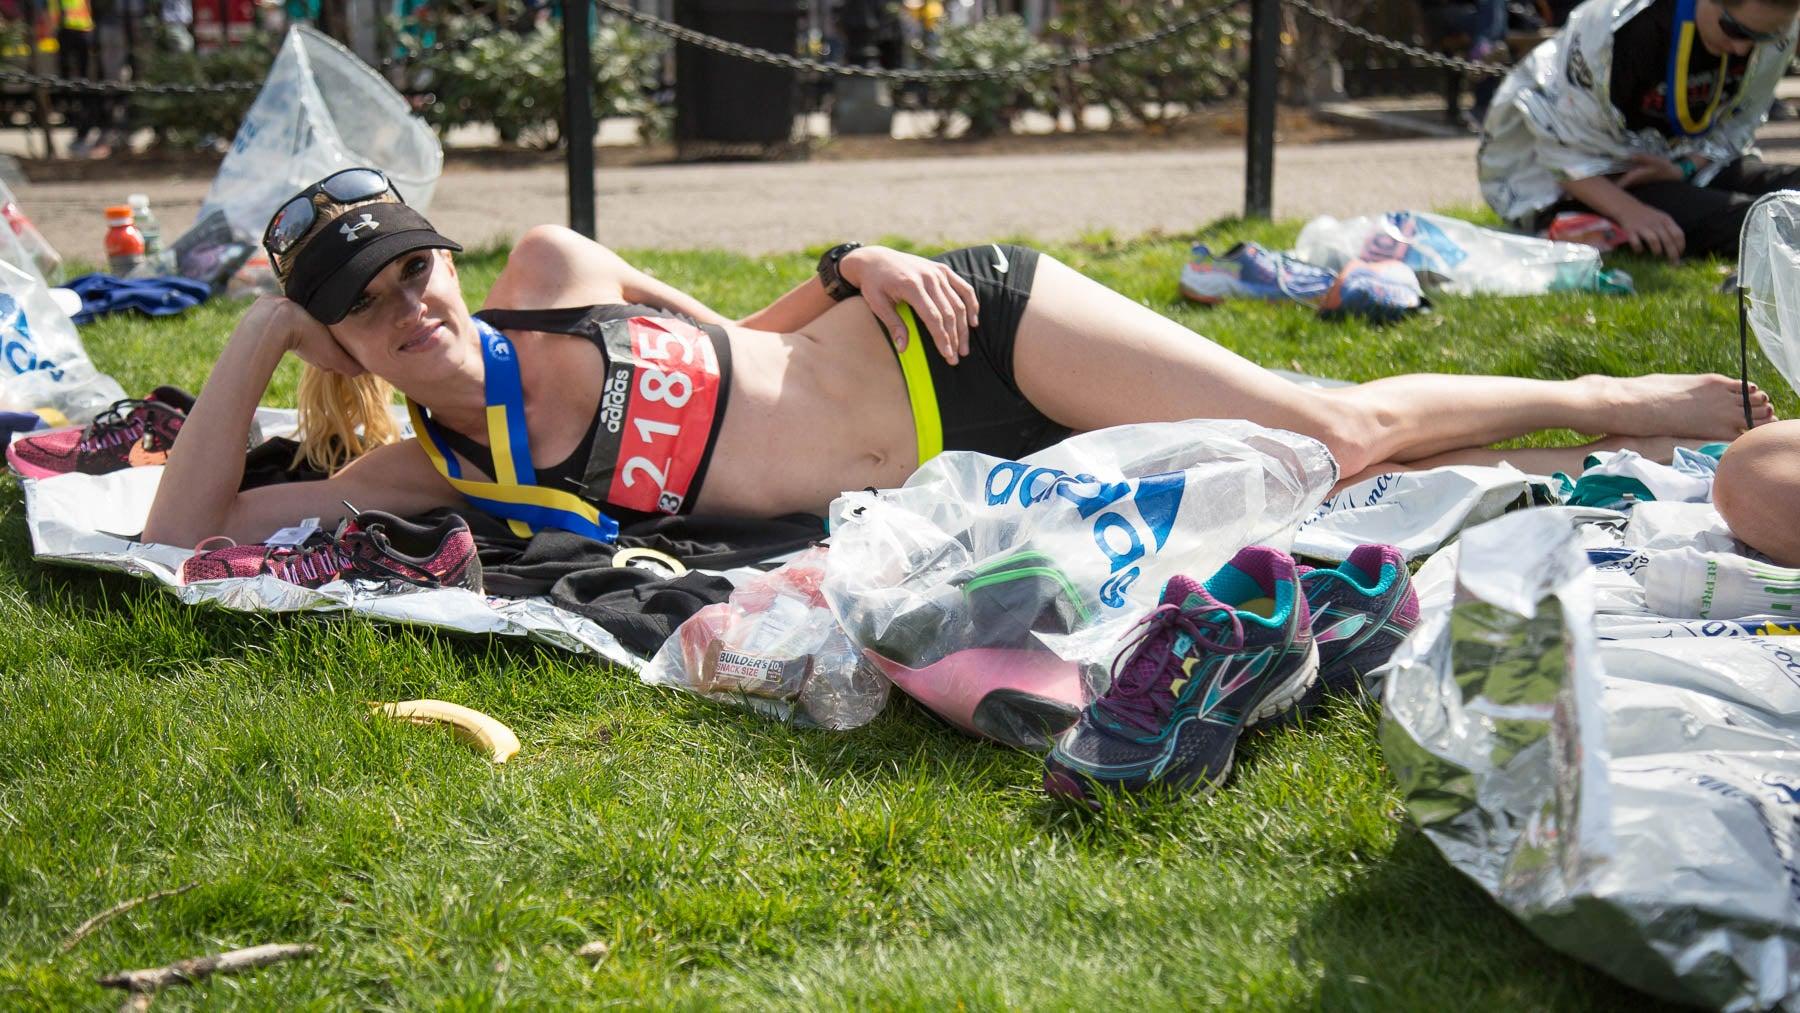 """""""I ran the Marathon last year and this year was basically the polar opposite. It was warm and sunny, and, this time, I could actually take in the cities. I absolutely loved Wellesley. I clapped every single one of those girls' hands and blew them all kisses,"""" Krissy Olsen, Salt Lake City."""